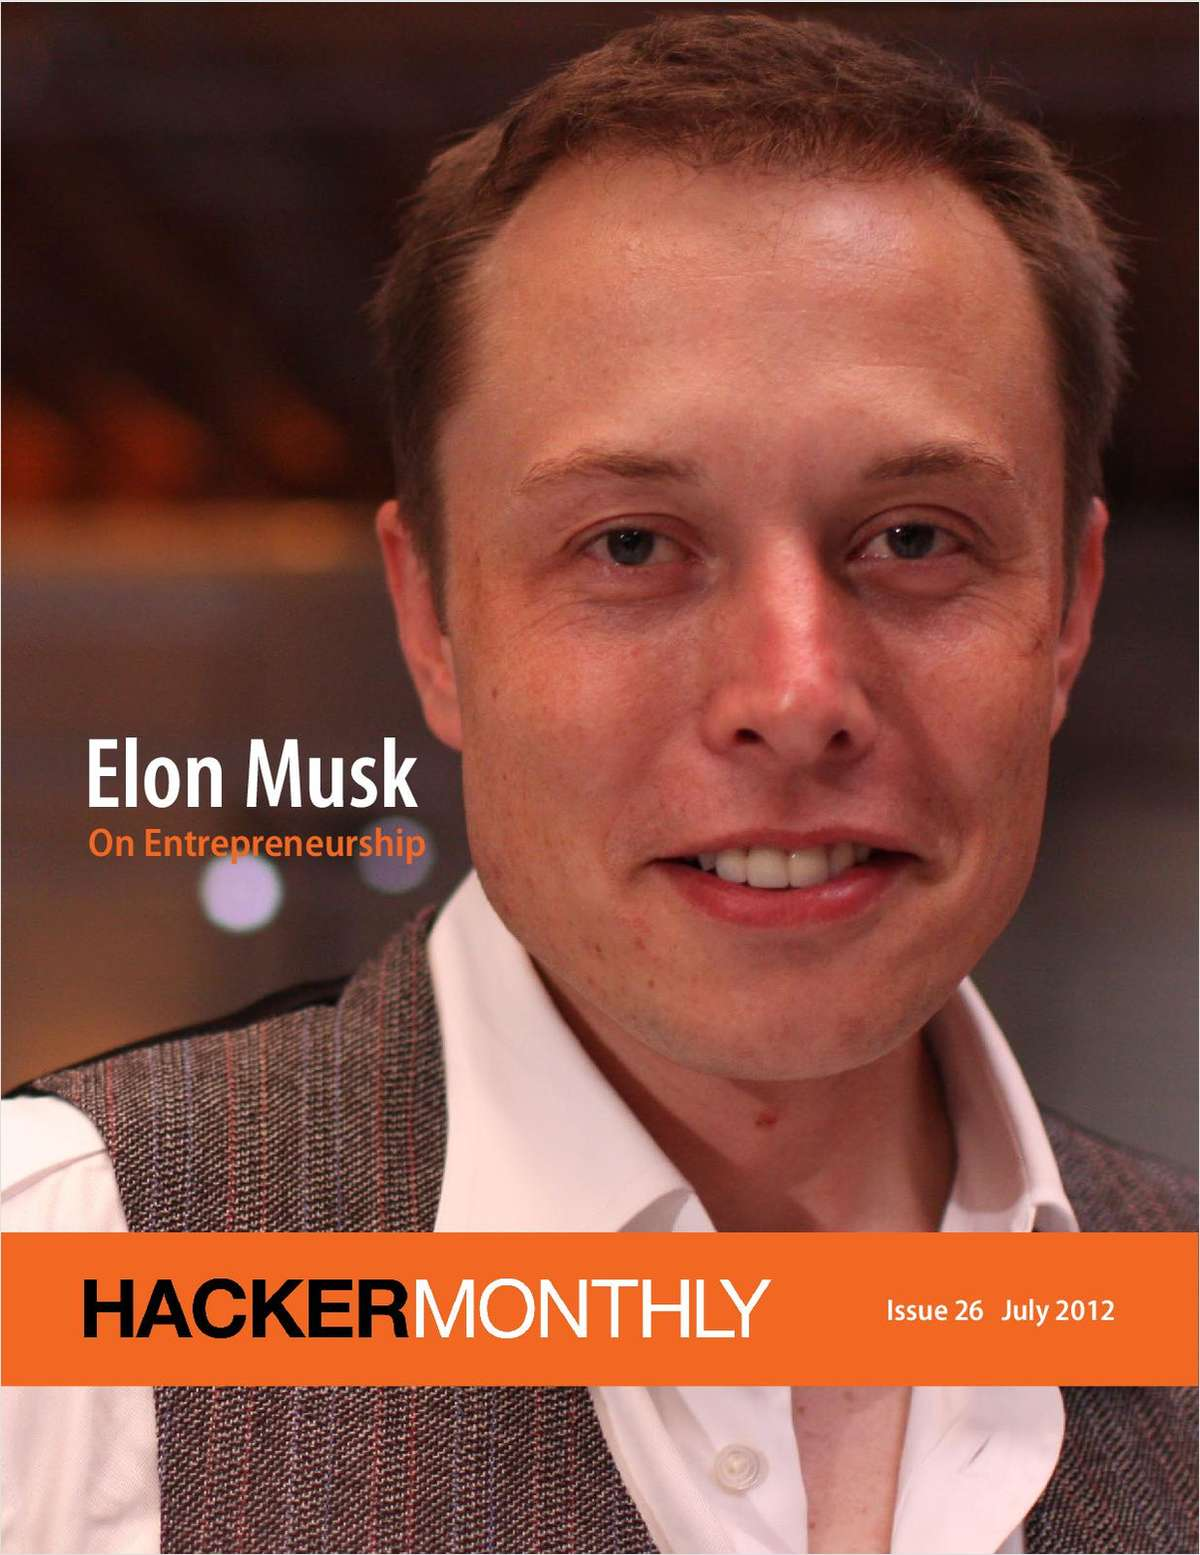 Hacker Monthly -- Elon Musk on Entrepreneurship